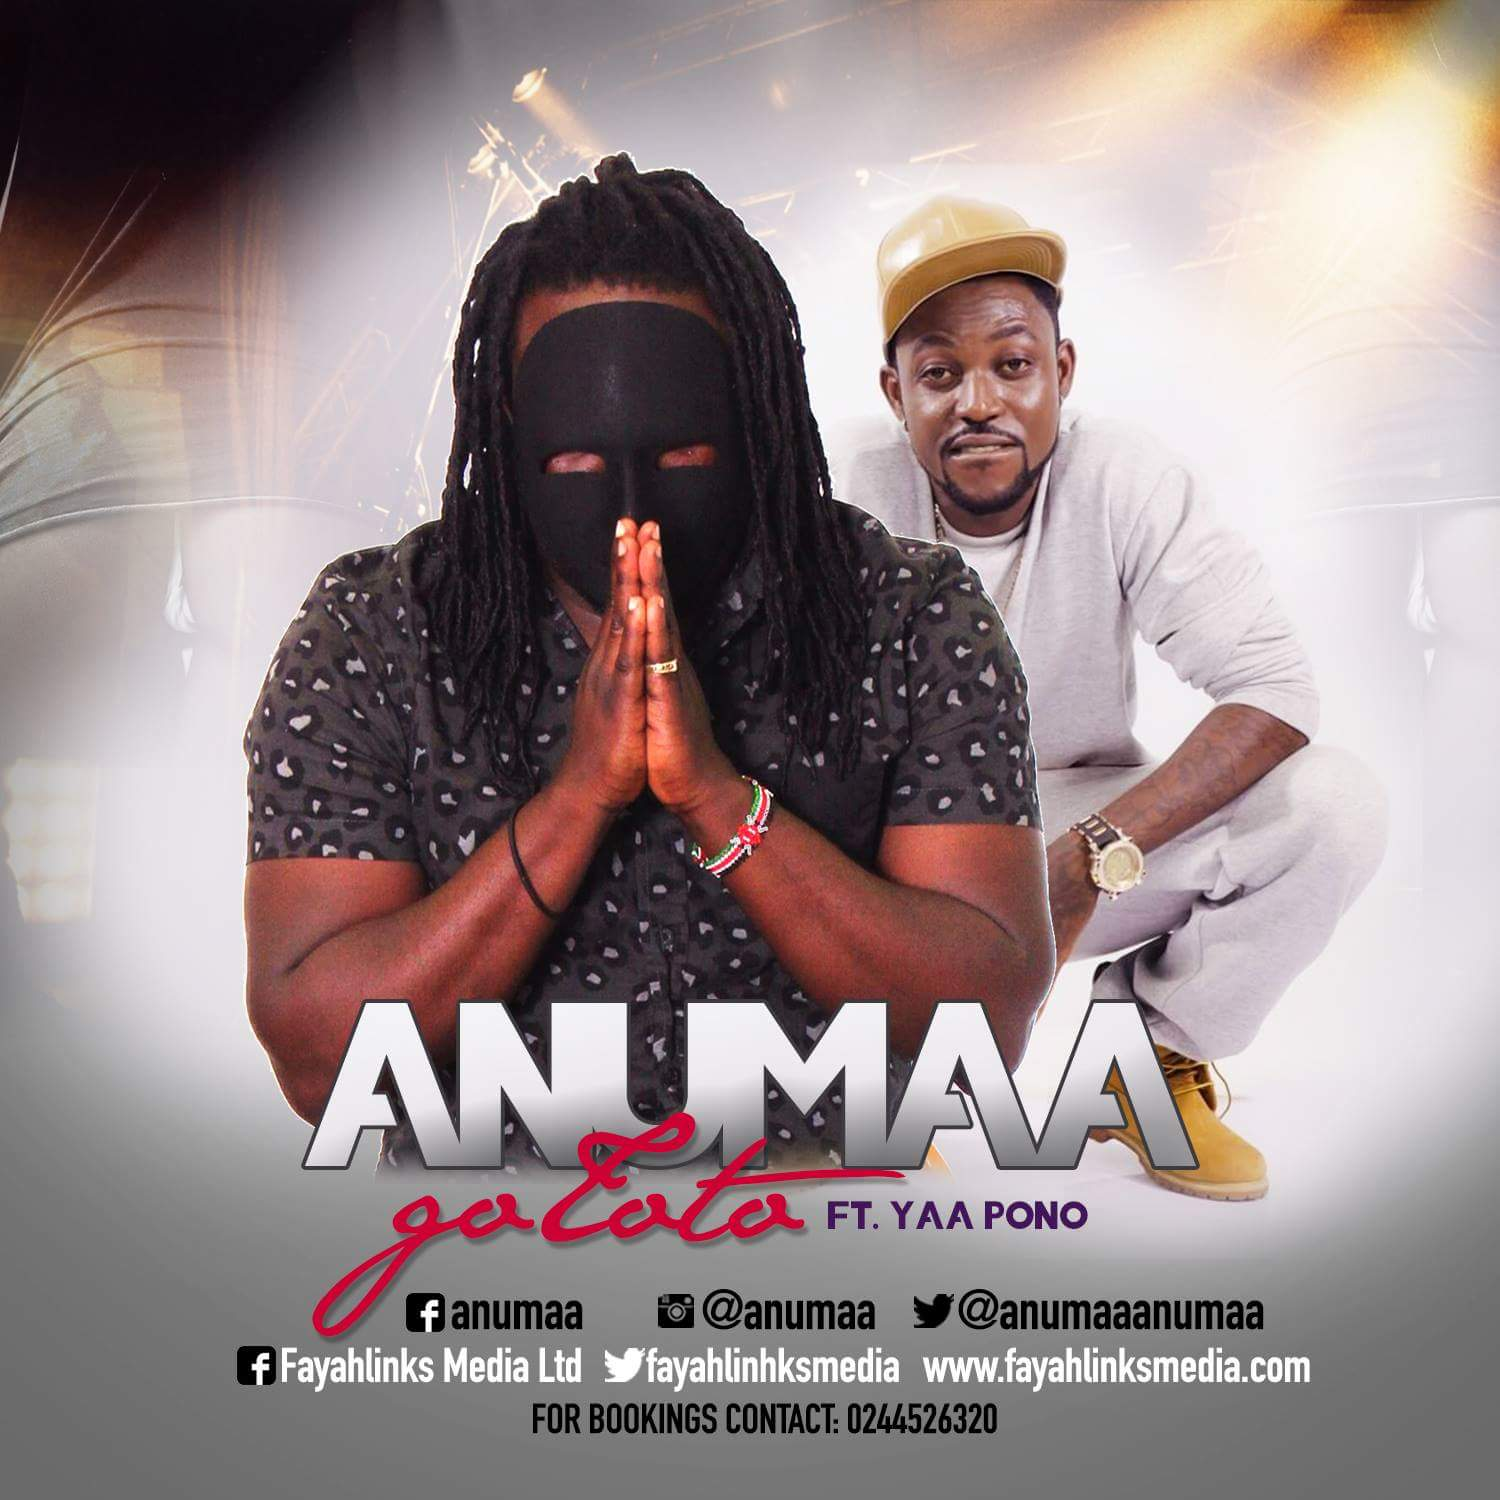 I Am A Rider Go Wider Mp3 Song Download: New Music: Anumaa Ft Yaa Pono